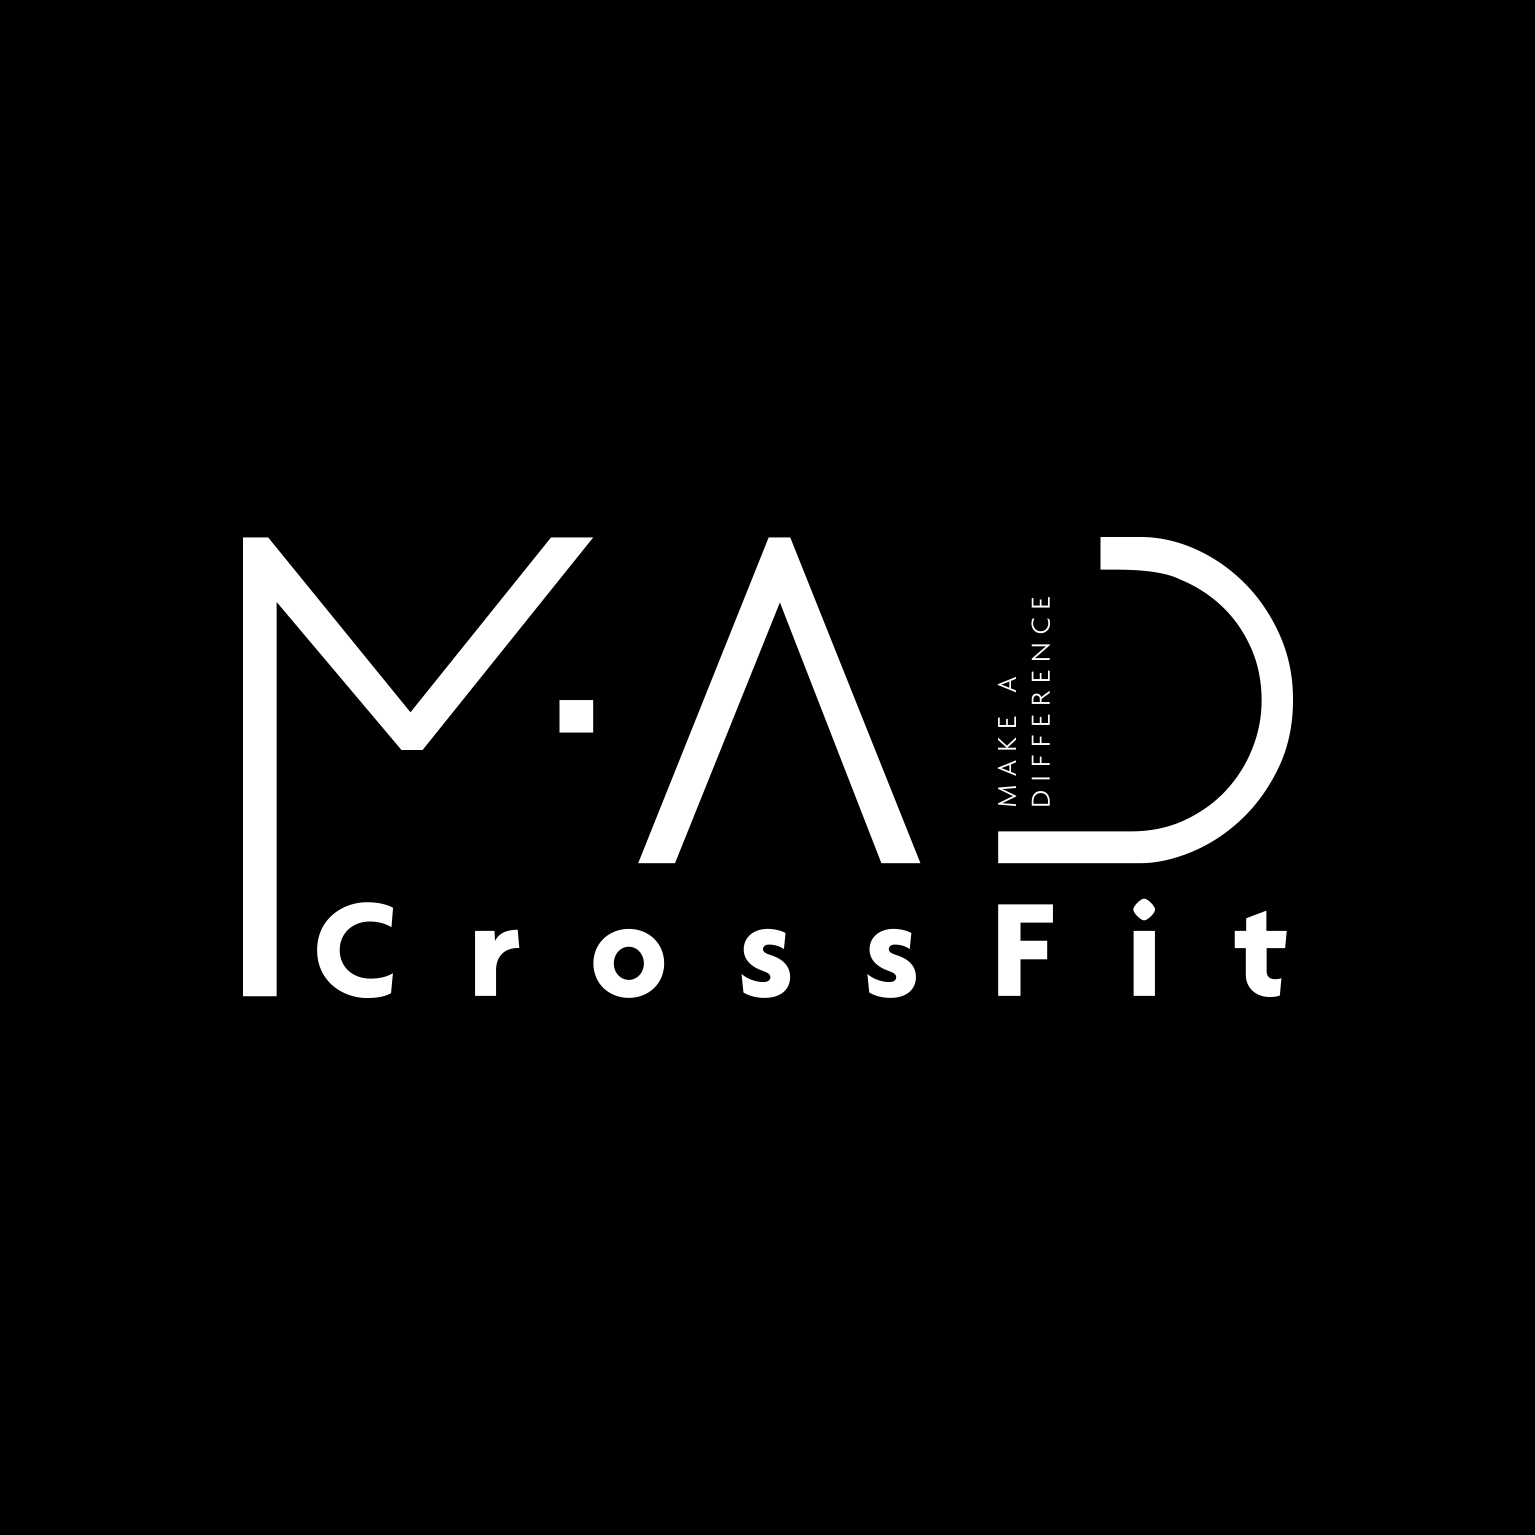 Make A Difference CrossFit